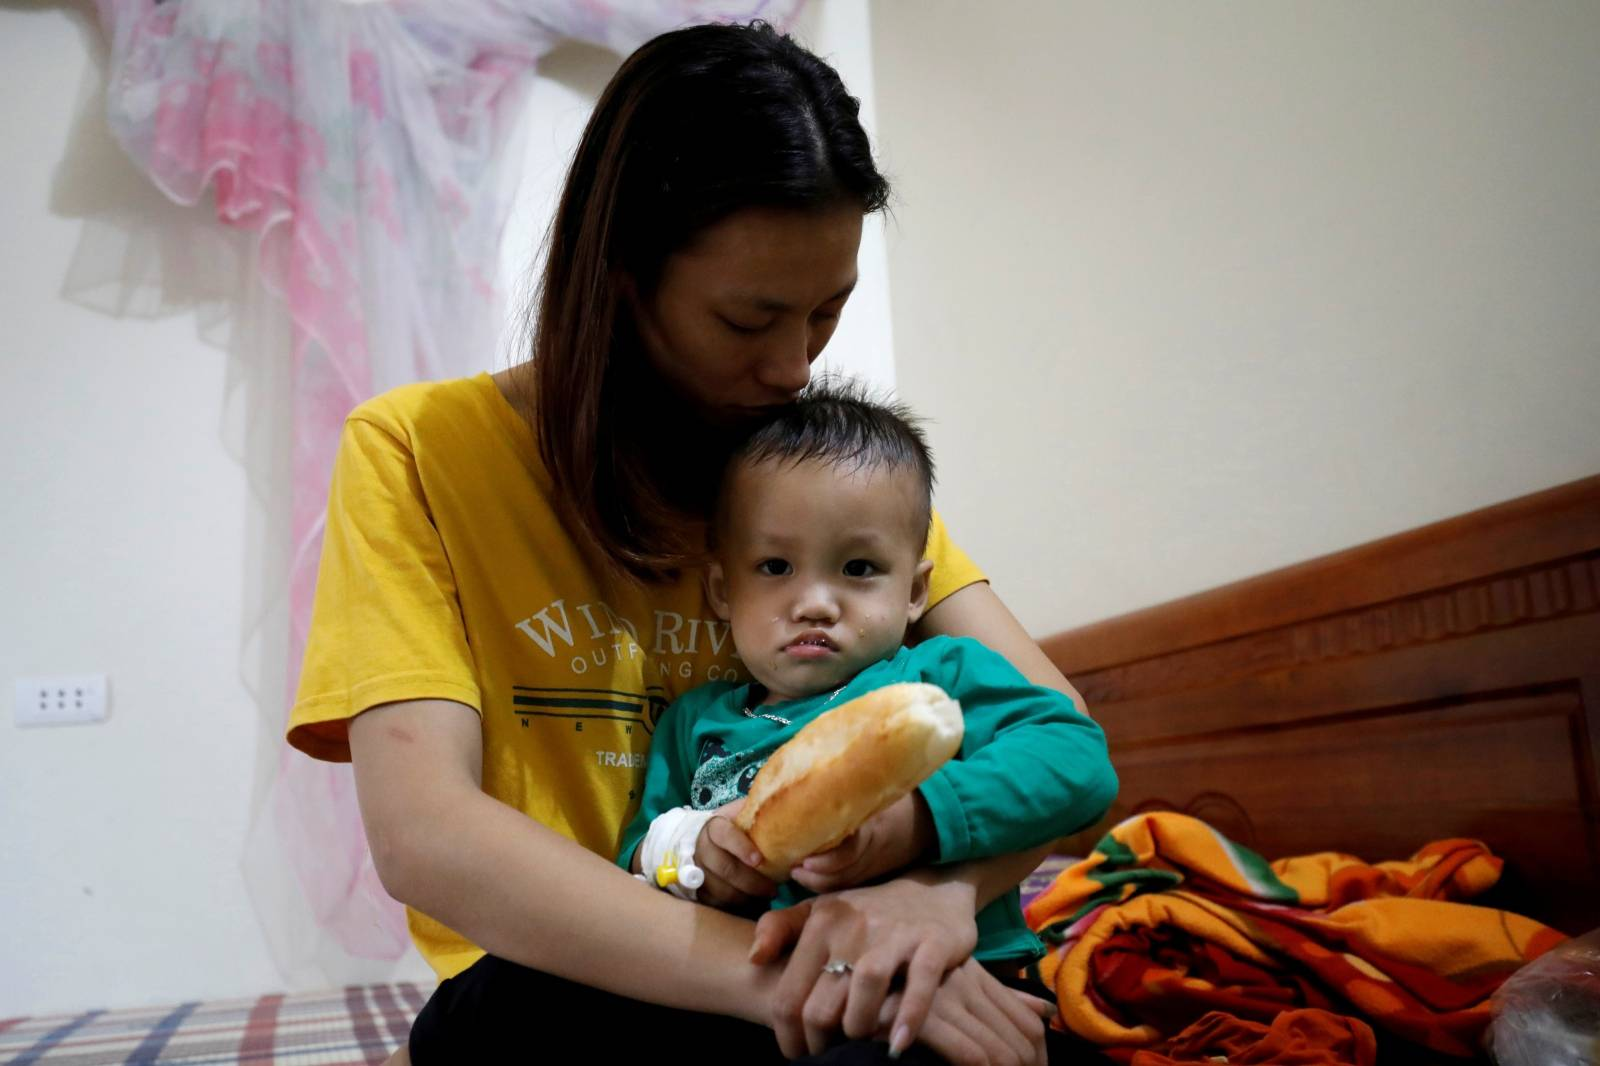 Hoang Thi Thuong, wife of Nguyen Dinh Tu, a Vietnamese suspected to be among dead victims found in a lorry in Britain, holds her son Nguyen Dinh Dan at their home in Nghe An province